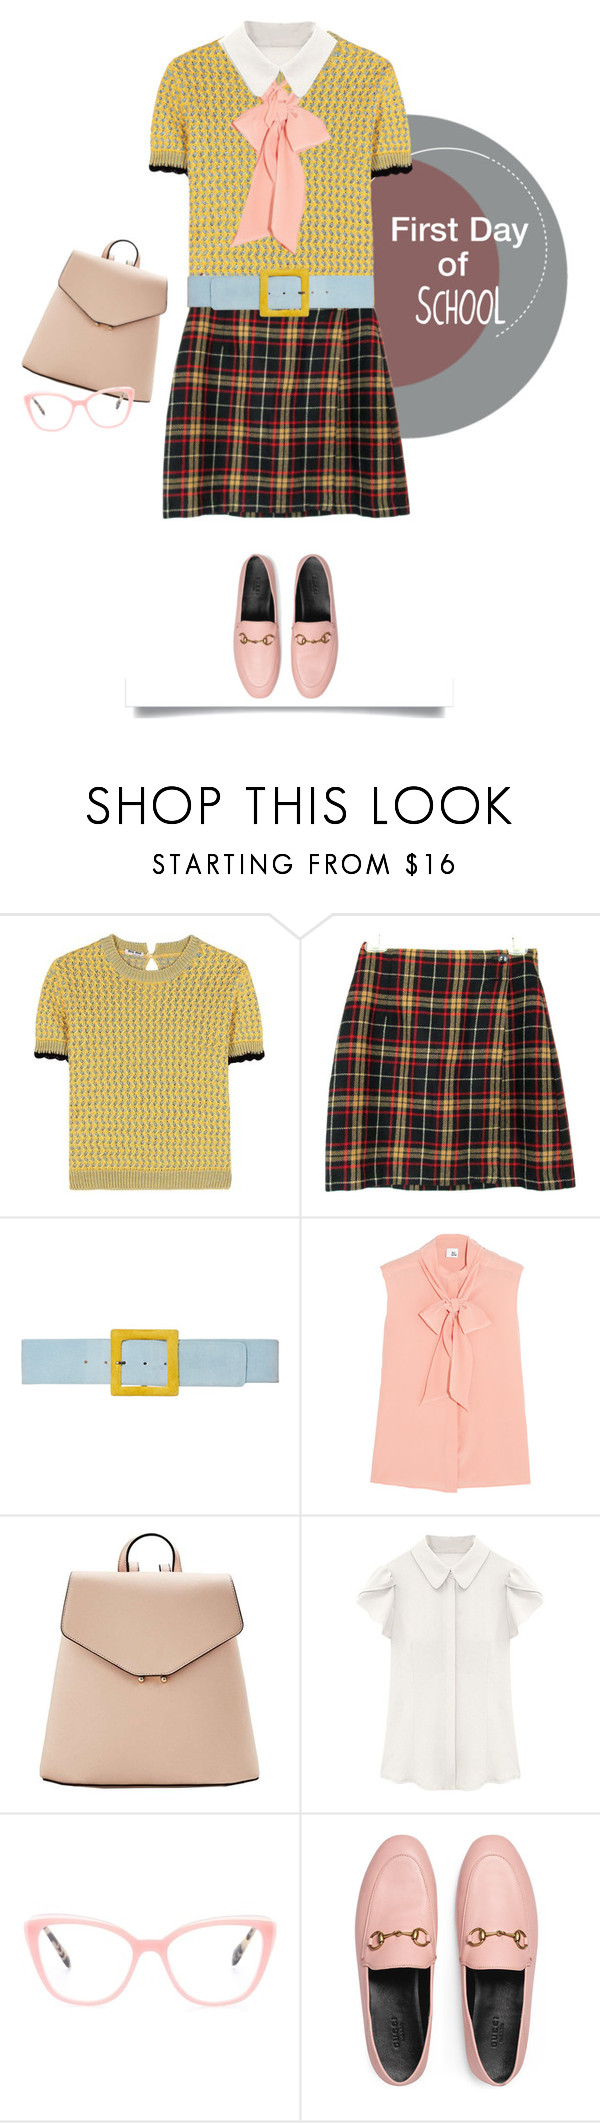 """""""Campus Chic: First Day of School"""" by pattykake ❤ liked on Polyvore featuring Miu Miu, Johanna Ortiz, Iris & Ink, MANGO, Gucci, BackToSchool, bts, firstdatofschool and campuschic"""